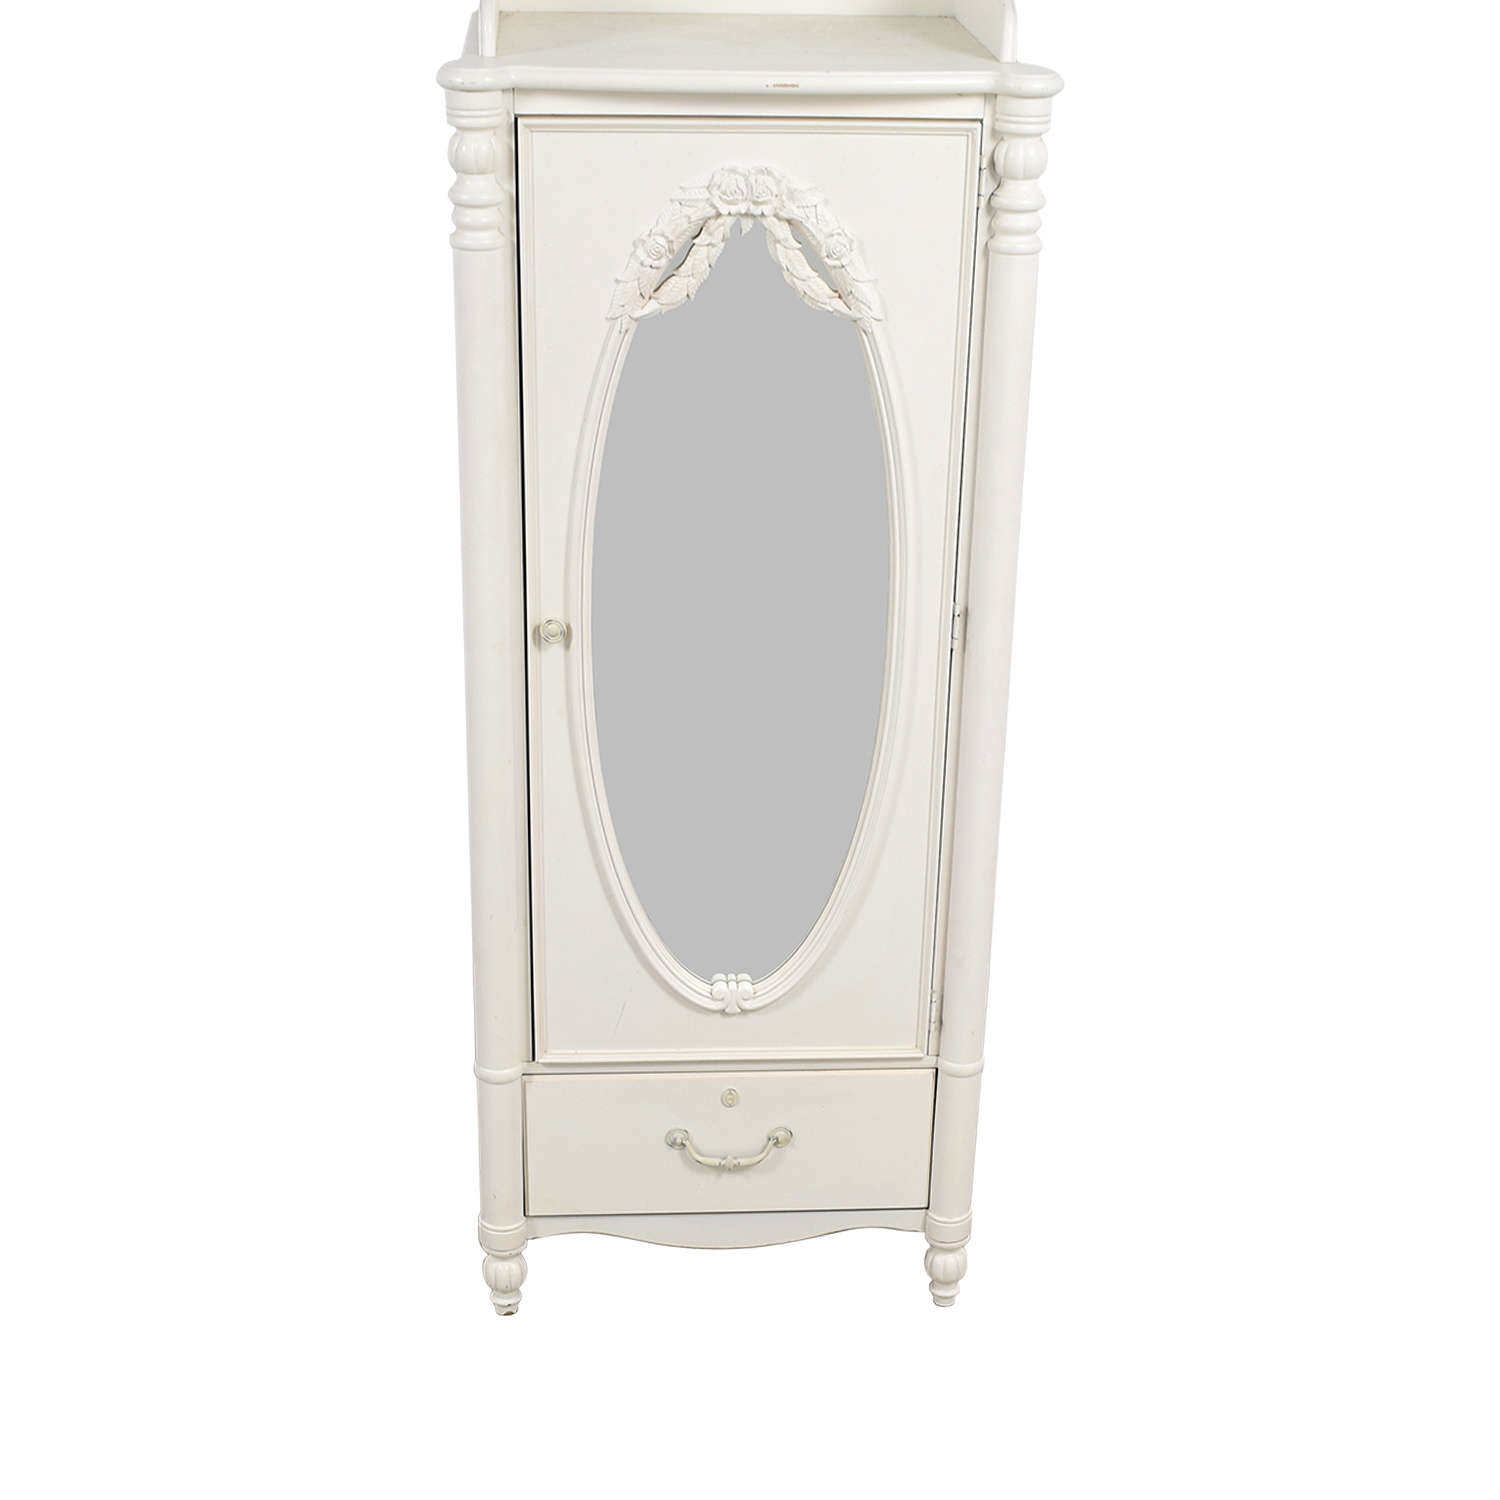 Stanley Home Furniture Stanley Home Furniture White Armoire with Exterior Mirror for sale